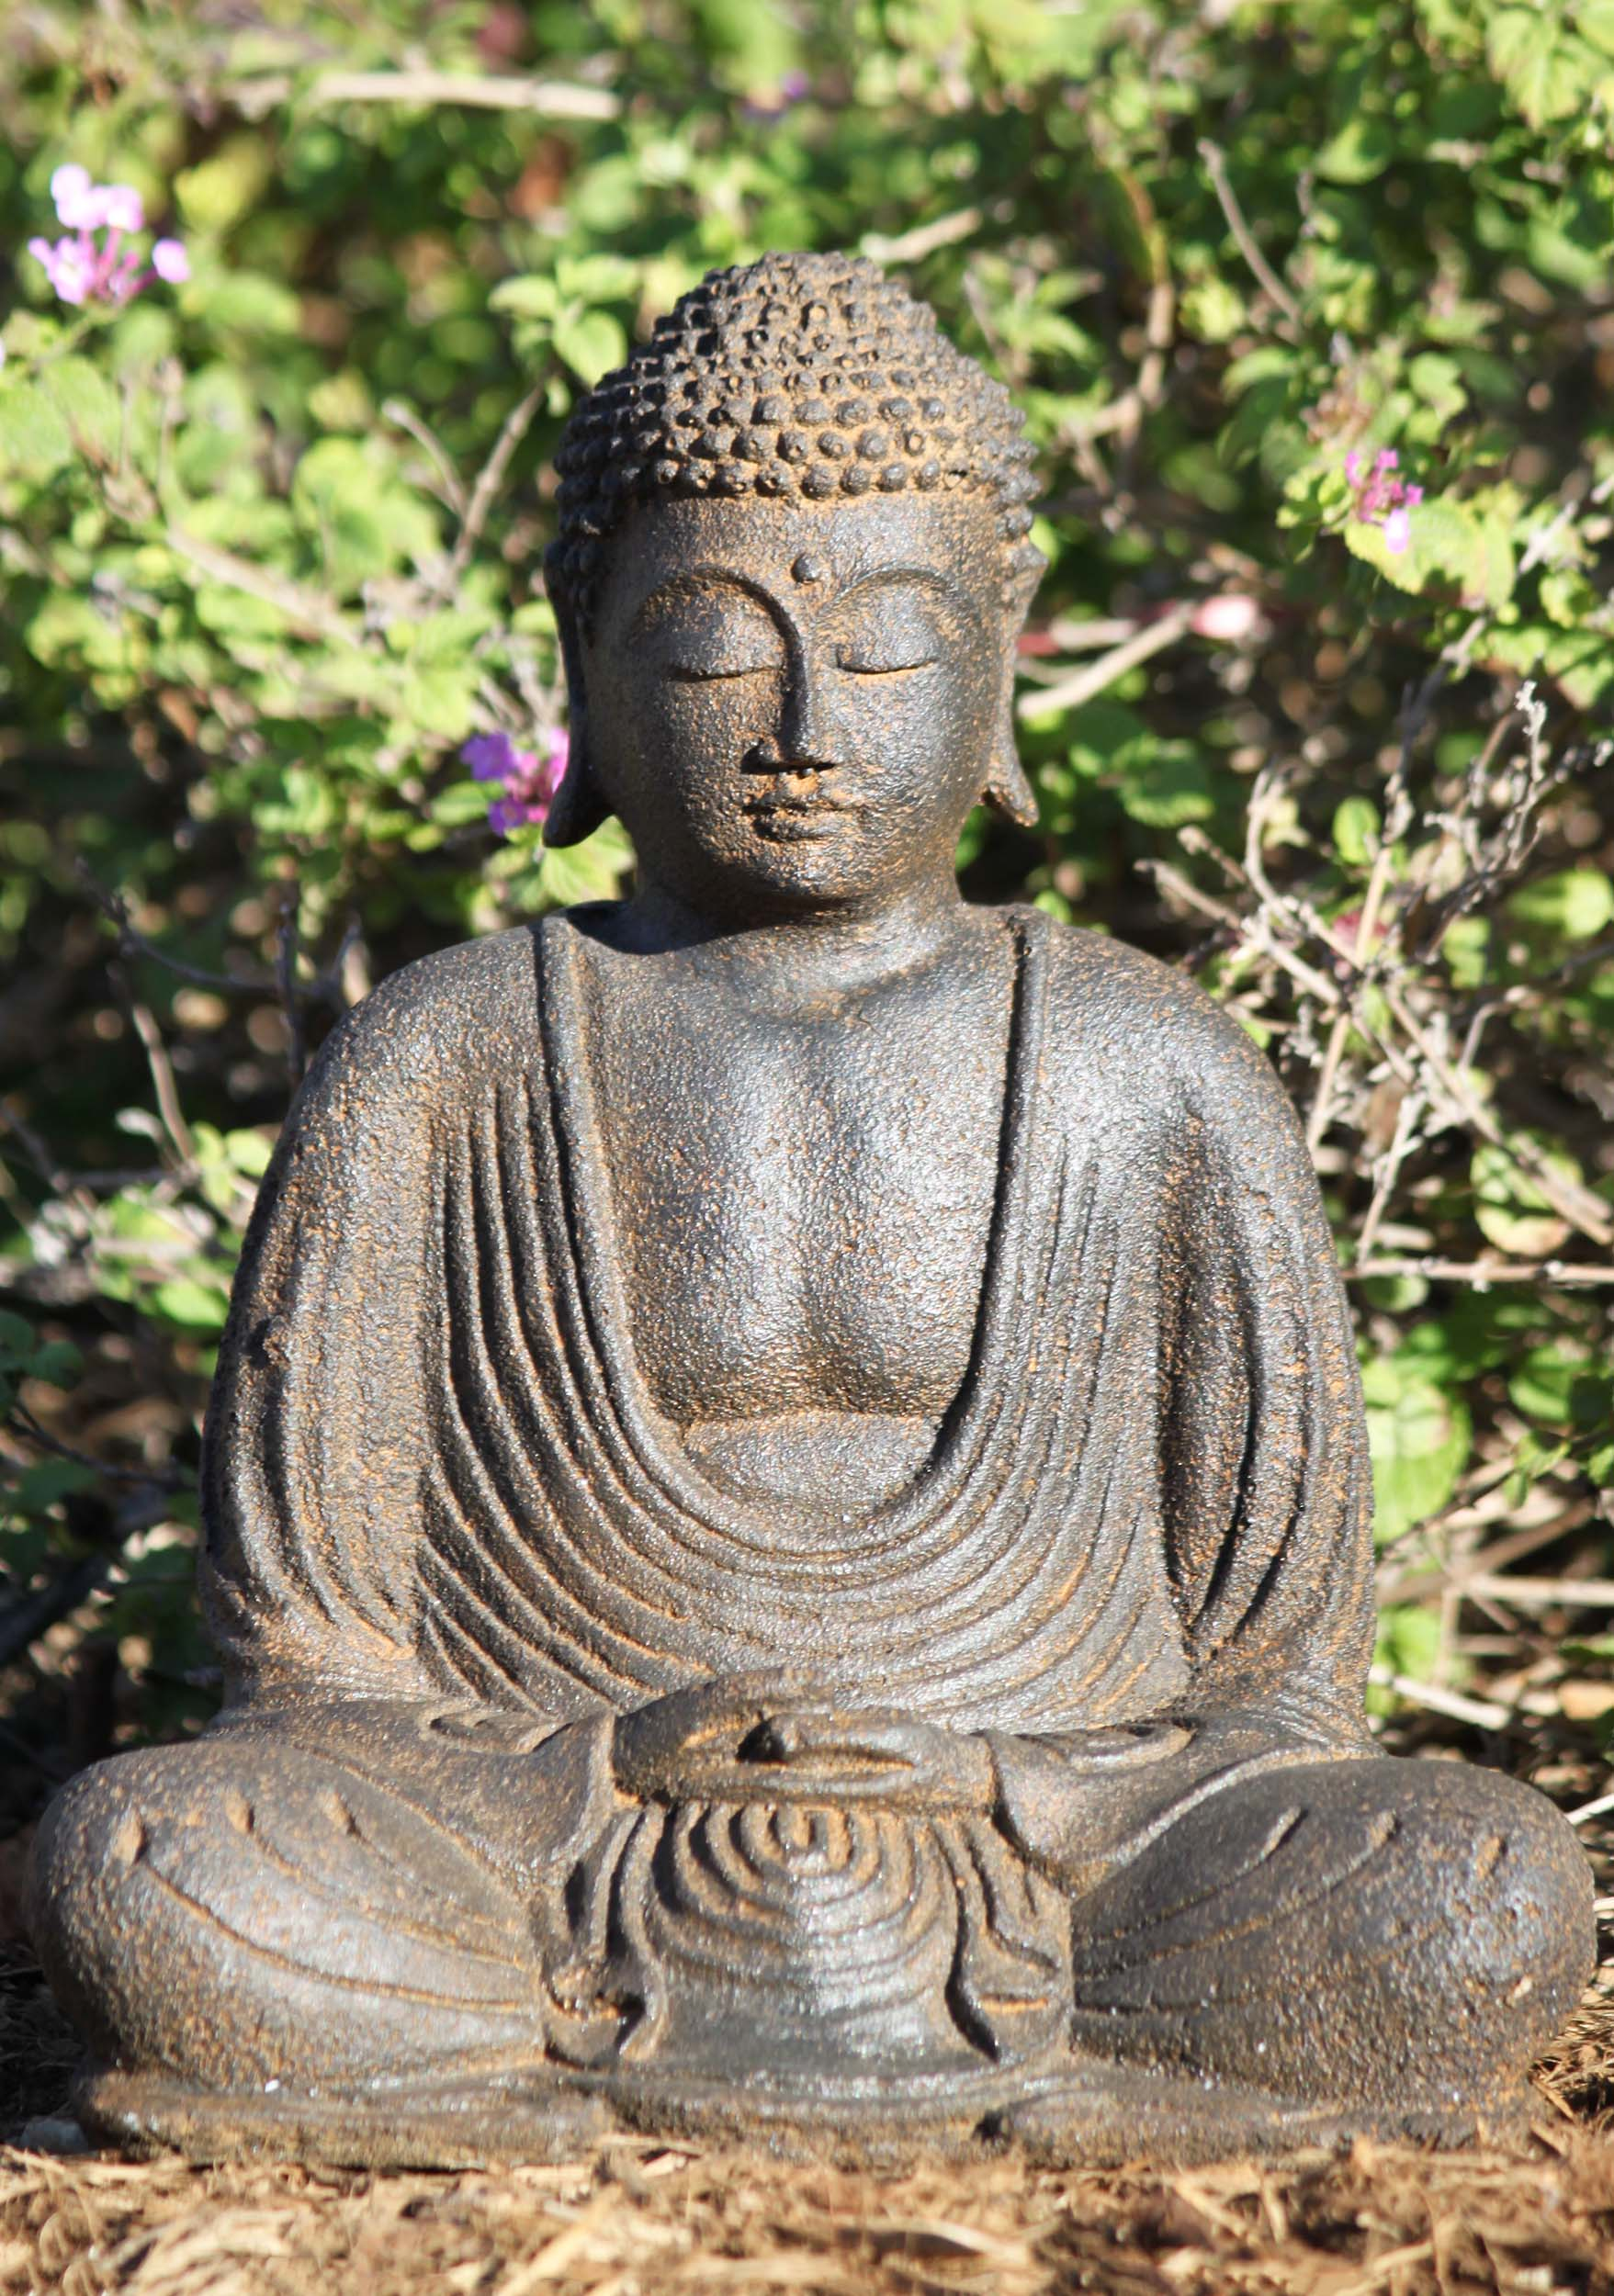 sold stone meditating garden buddha statue 8 67vc1a. Black Bedroom Furniture Sets. Home Design Ideas